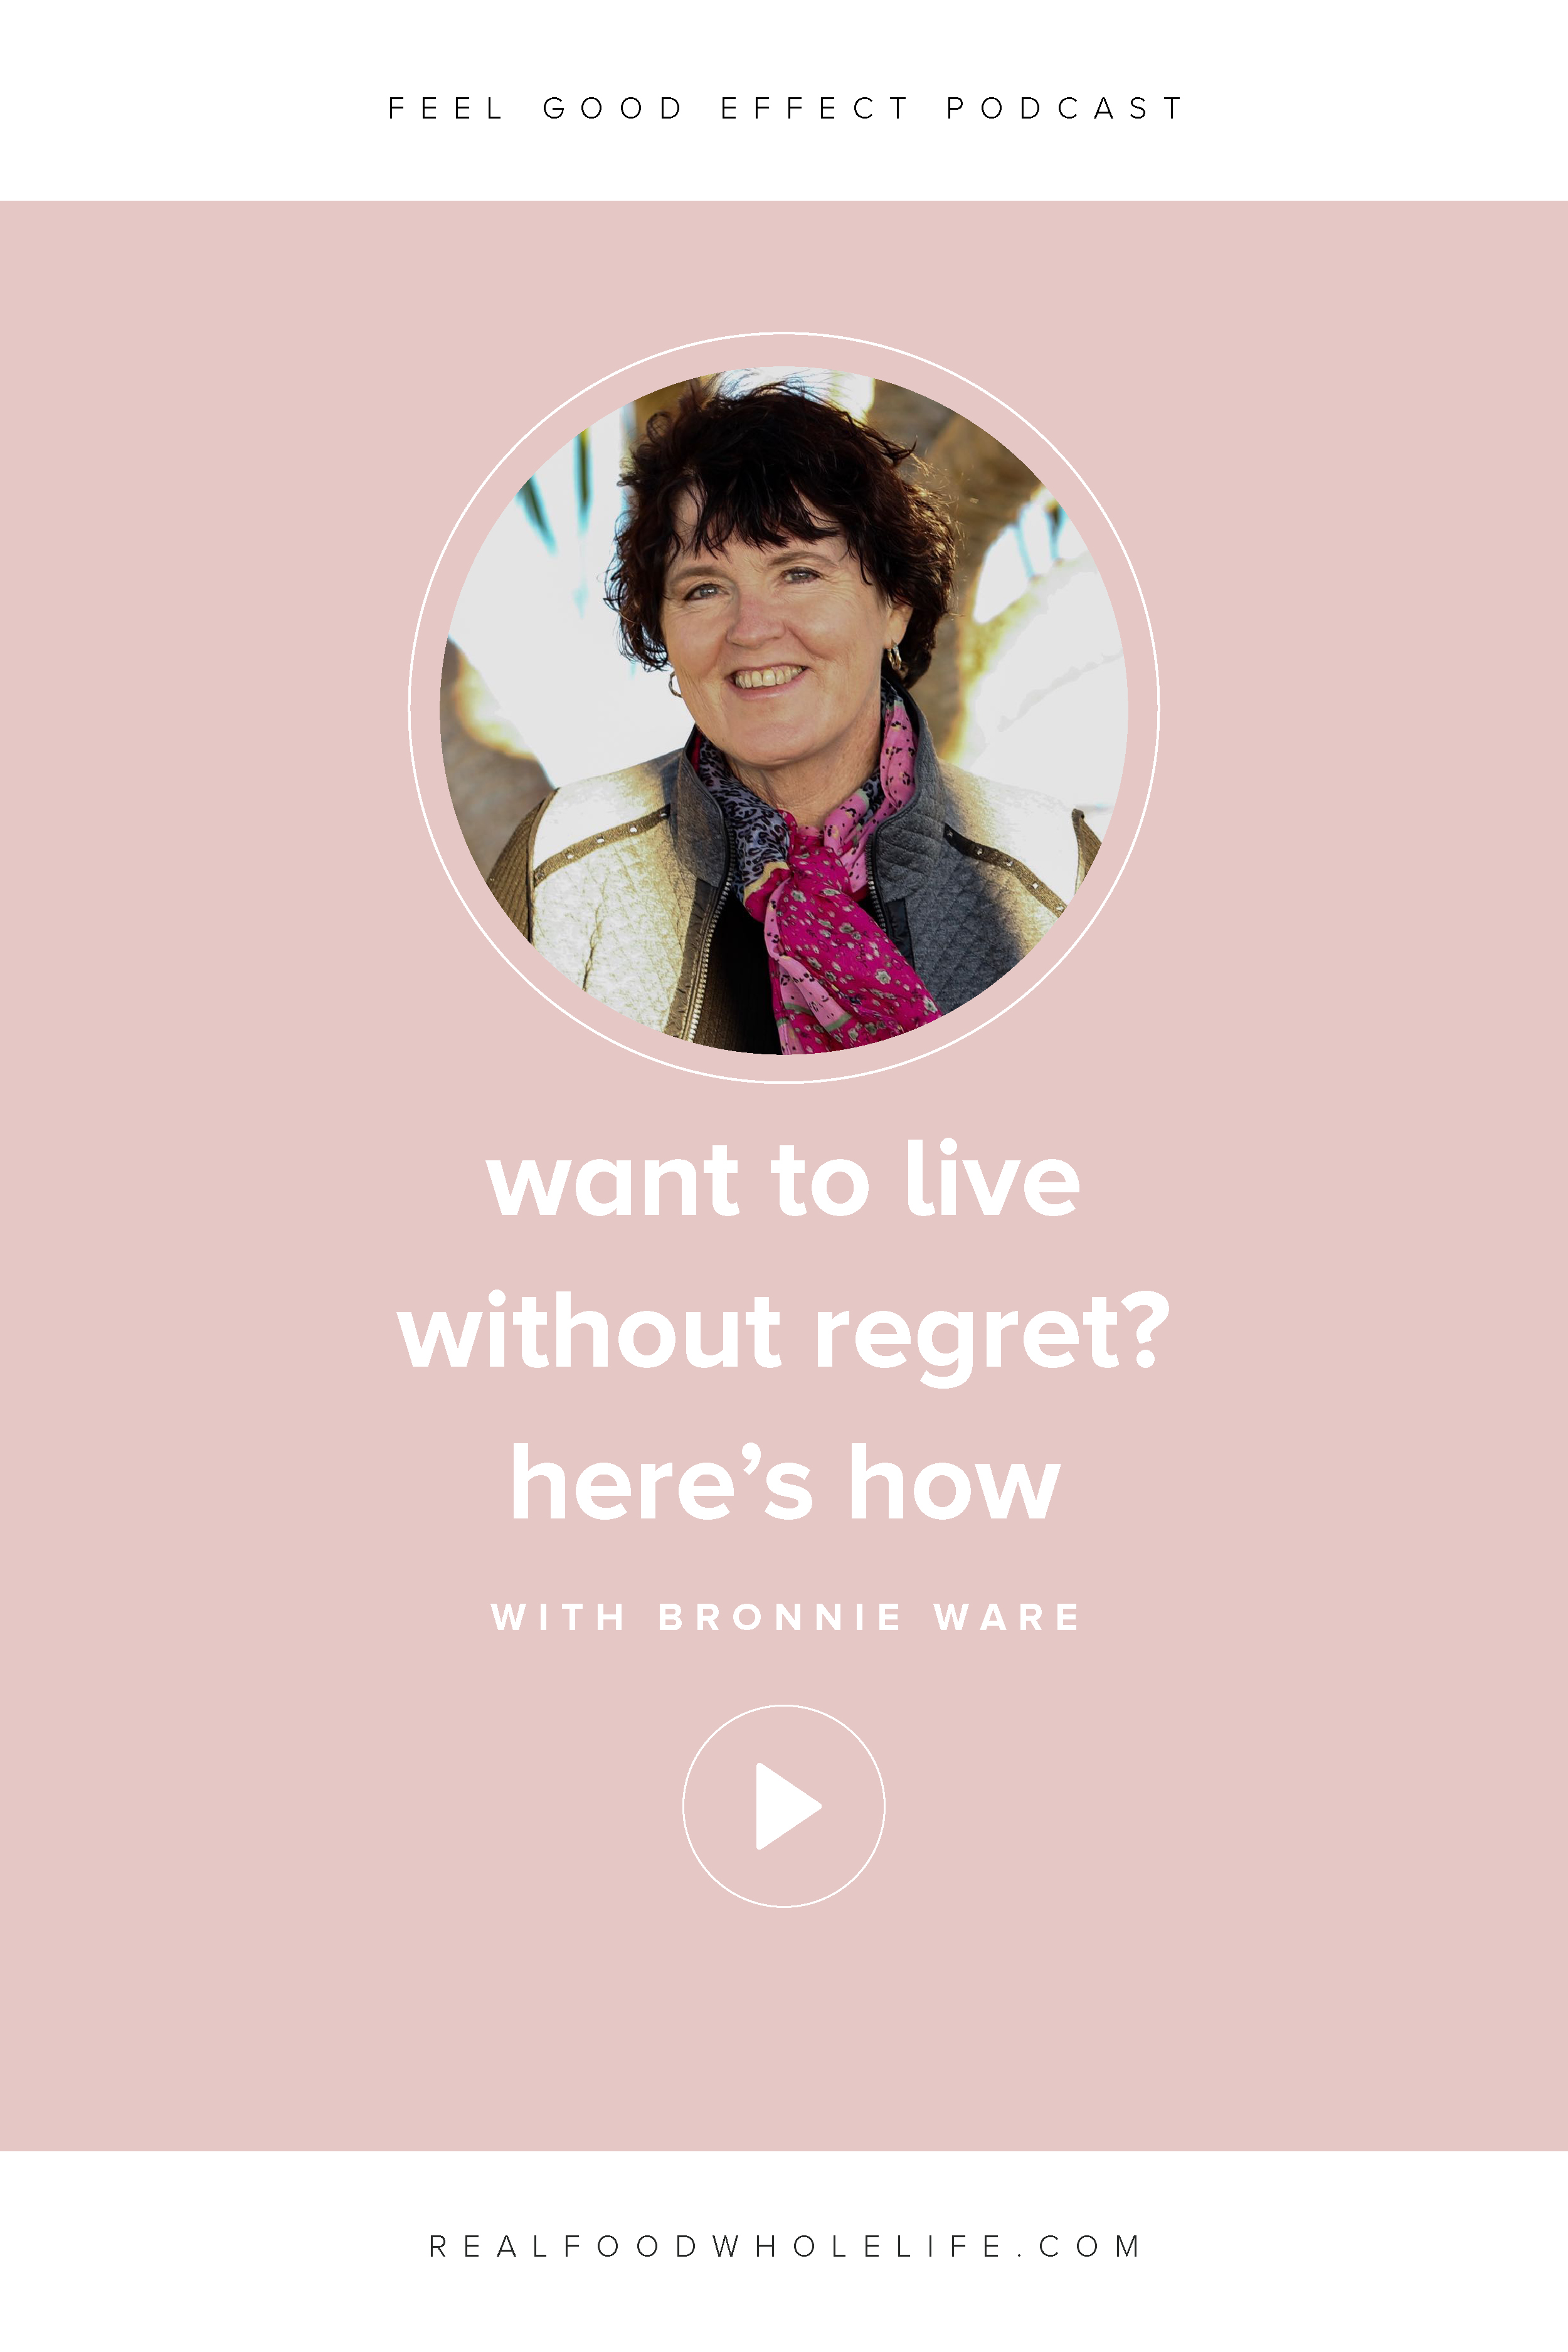 How to live without regret with Bronnie Ware on the Feel Good Effect Podcast. #realfoodwholelife #feelgoodeffect #purpose #wholelife #passion